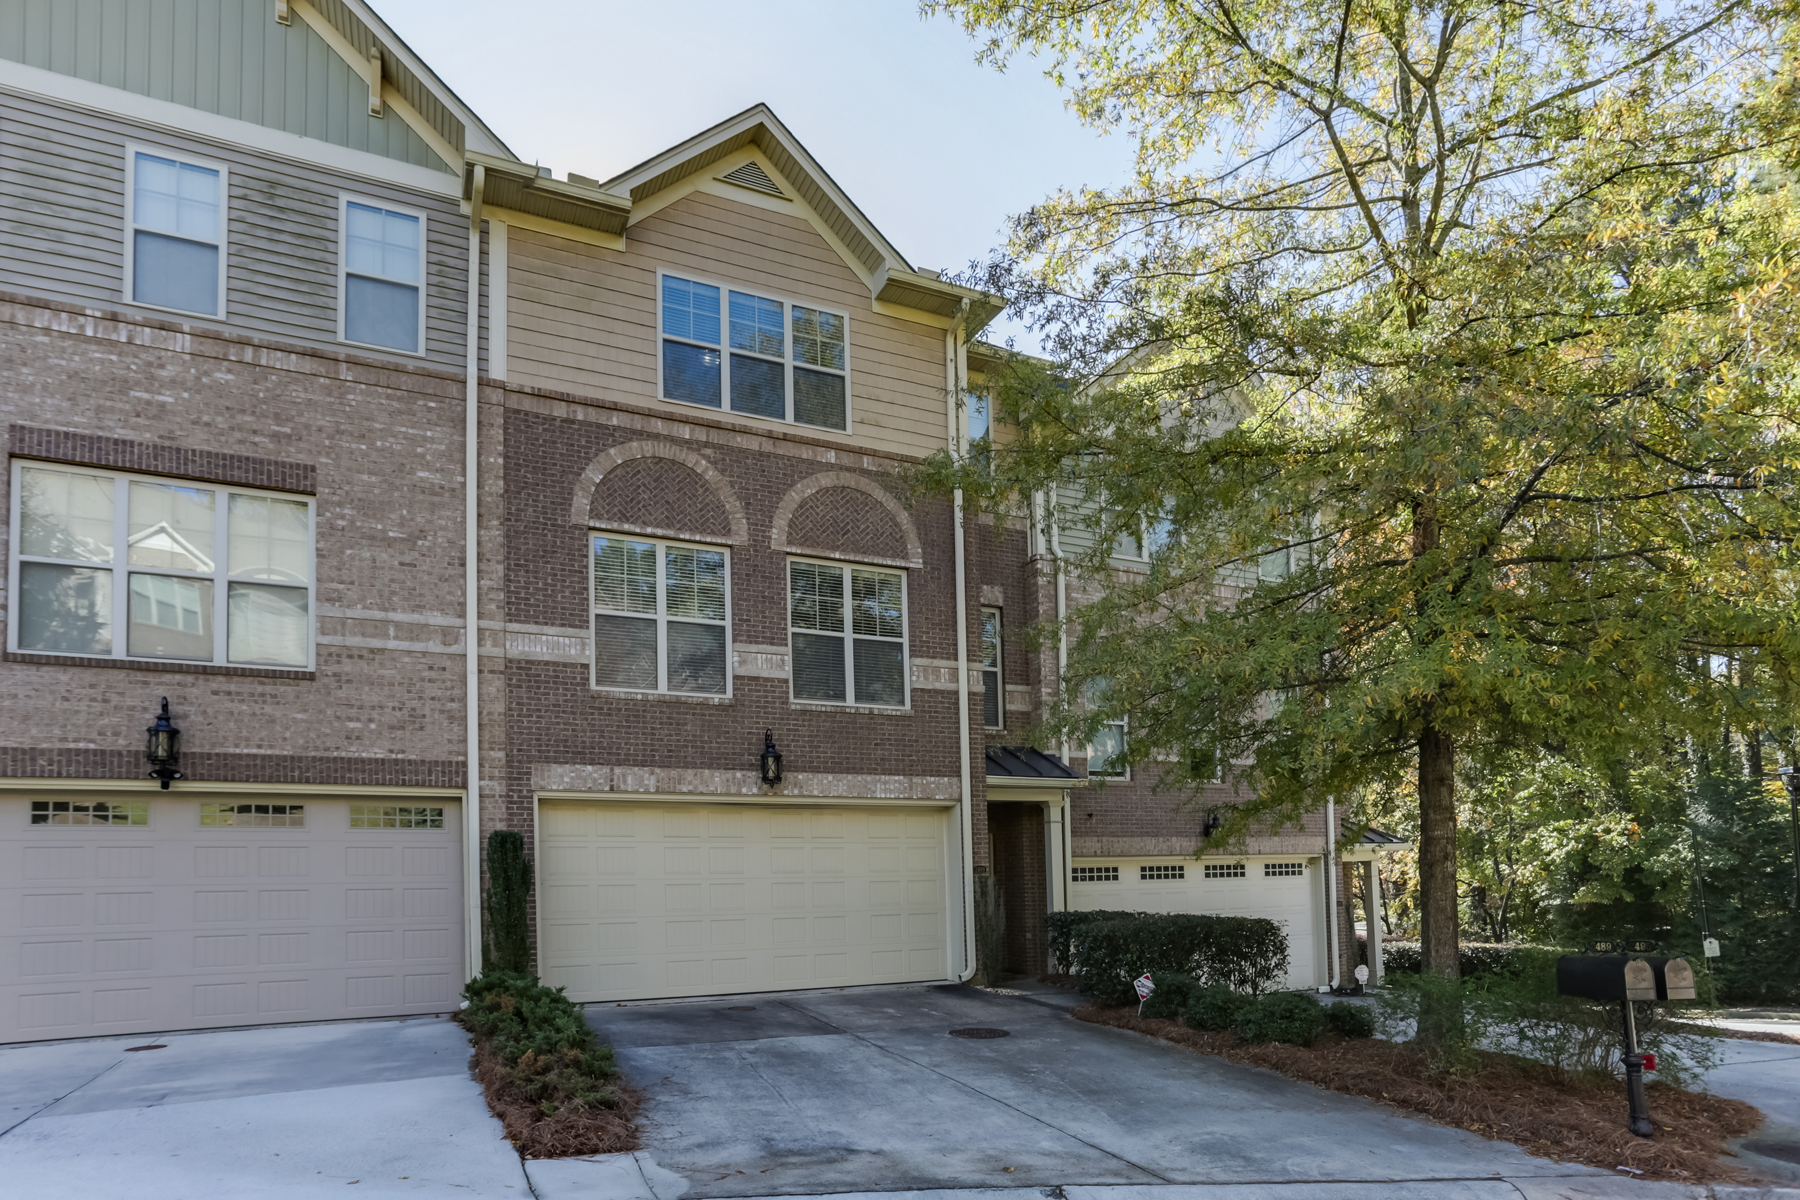 Townhouse for Sale at Hot Smyrna With All The Space You're Looking For 2489 Palladian Manor Way Smyrna, Georgia 30080 United States